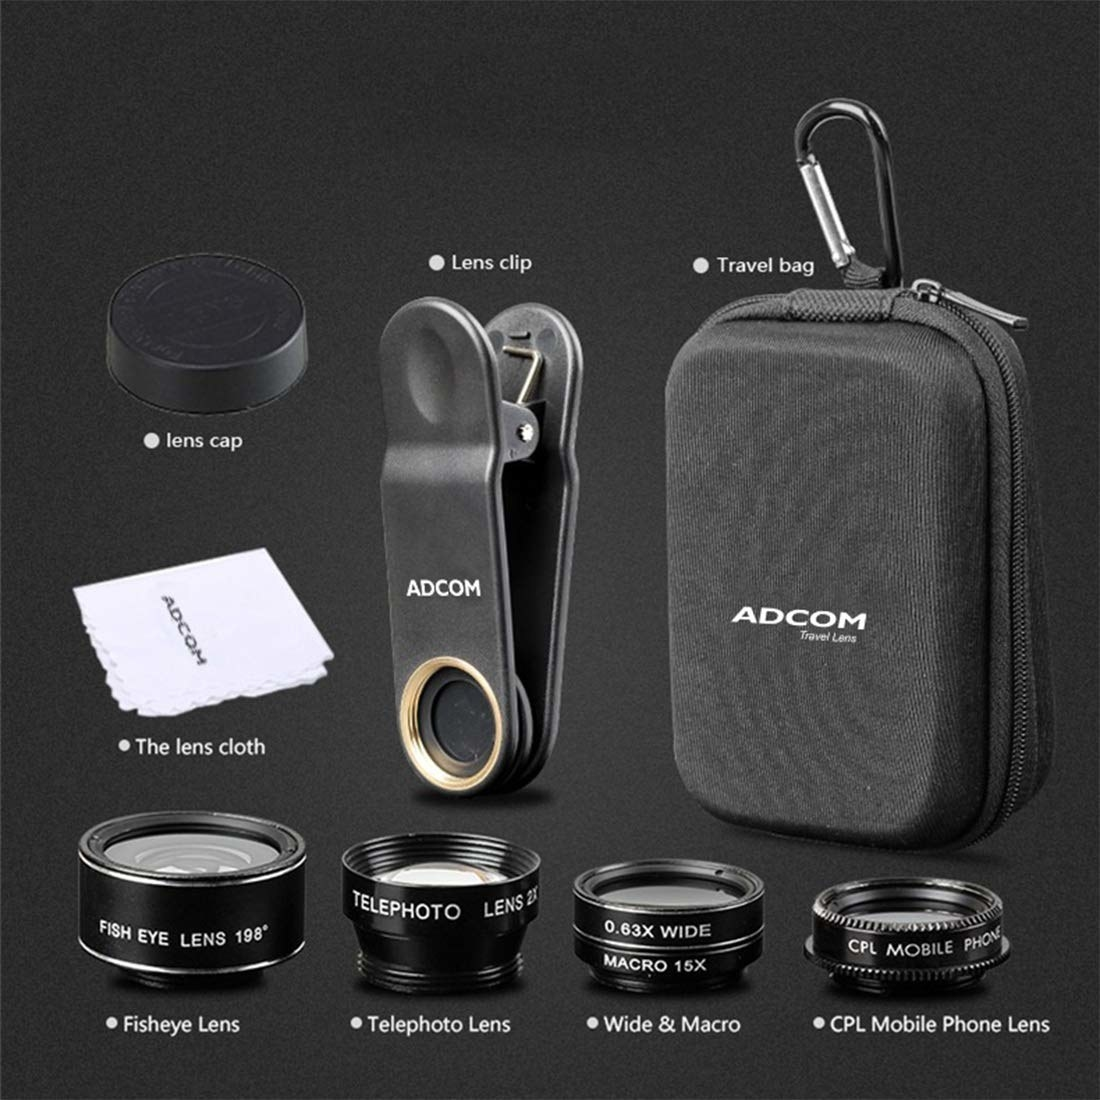 Various items included in the kit, such as the lenses, lens cloth, clip, bag, and lens cap.